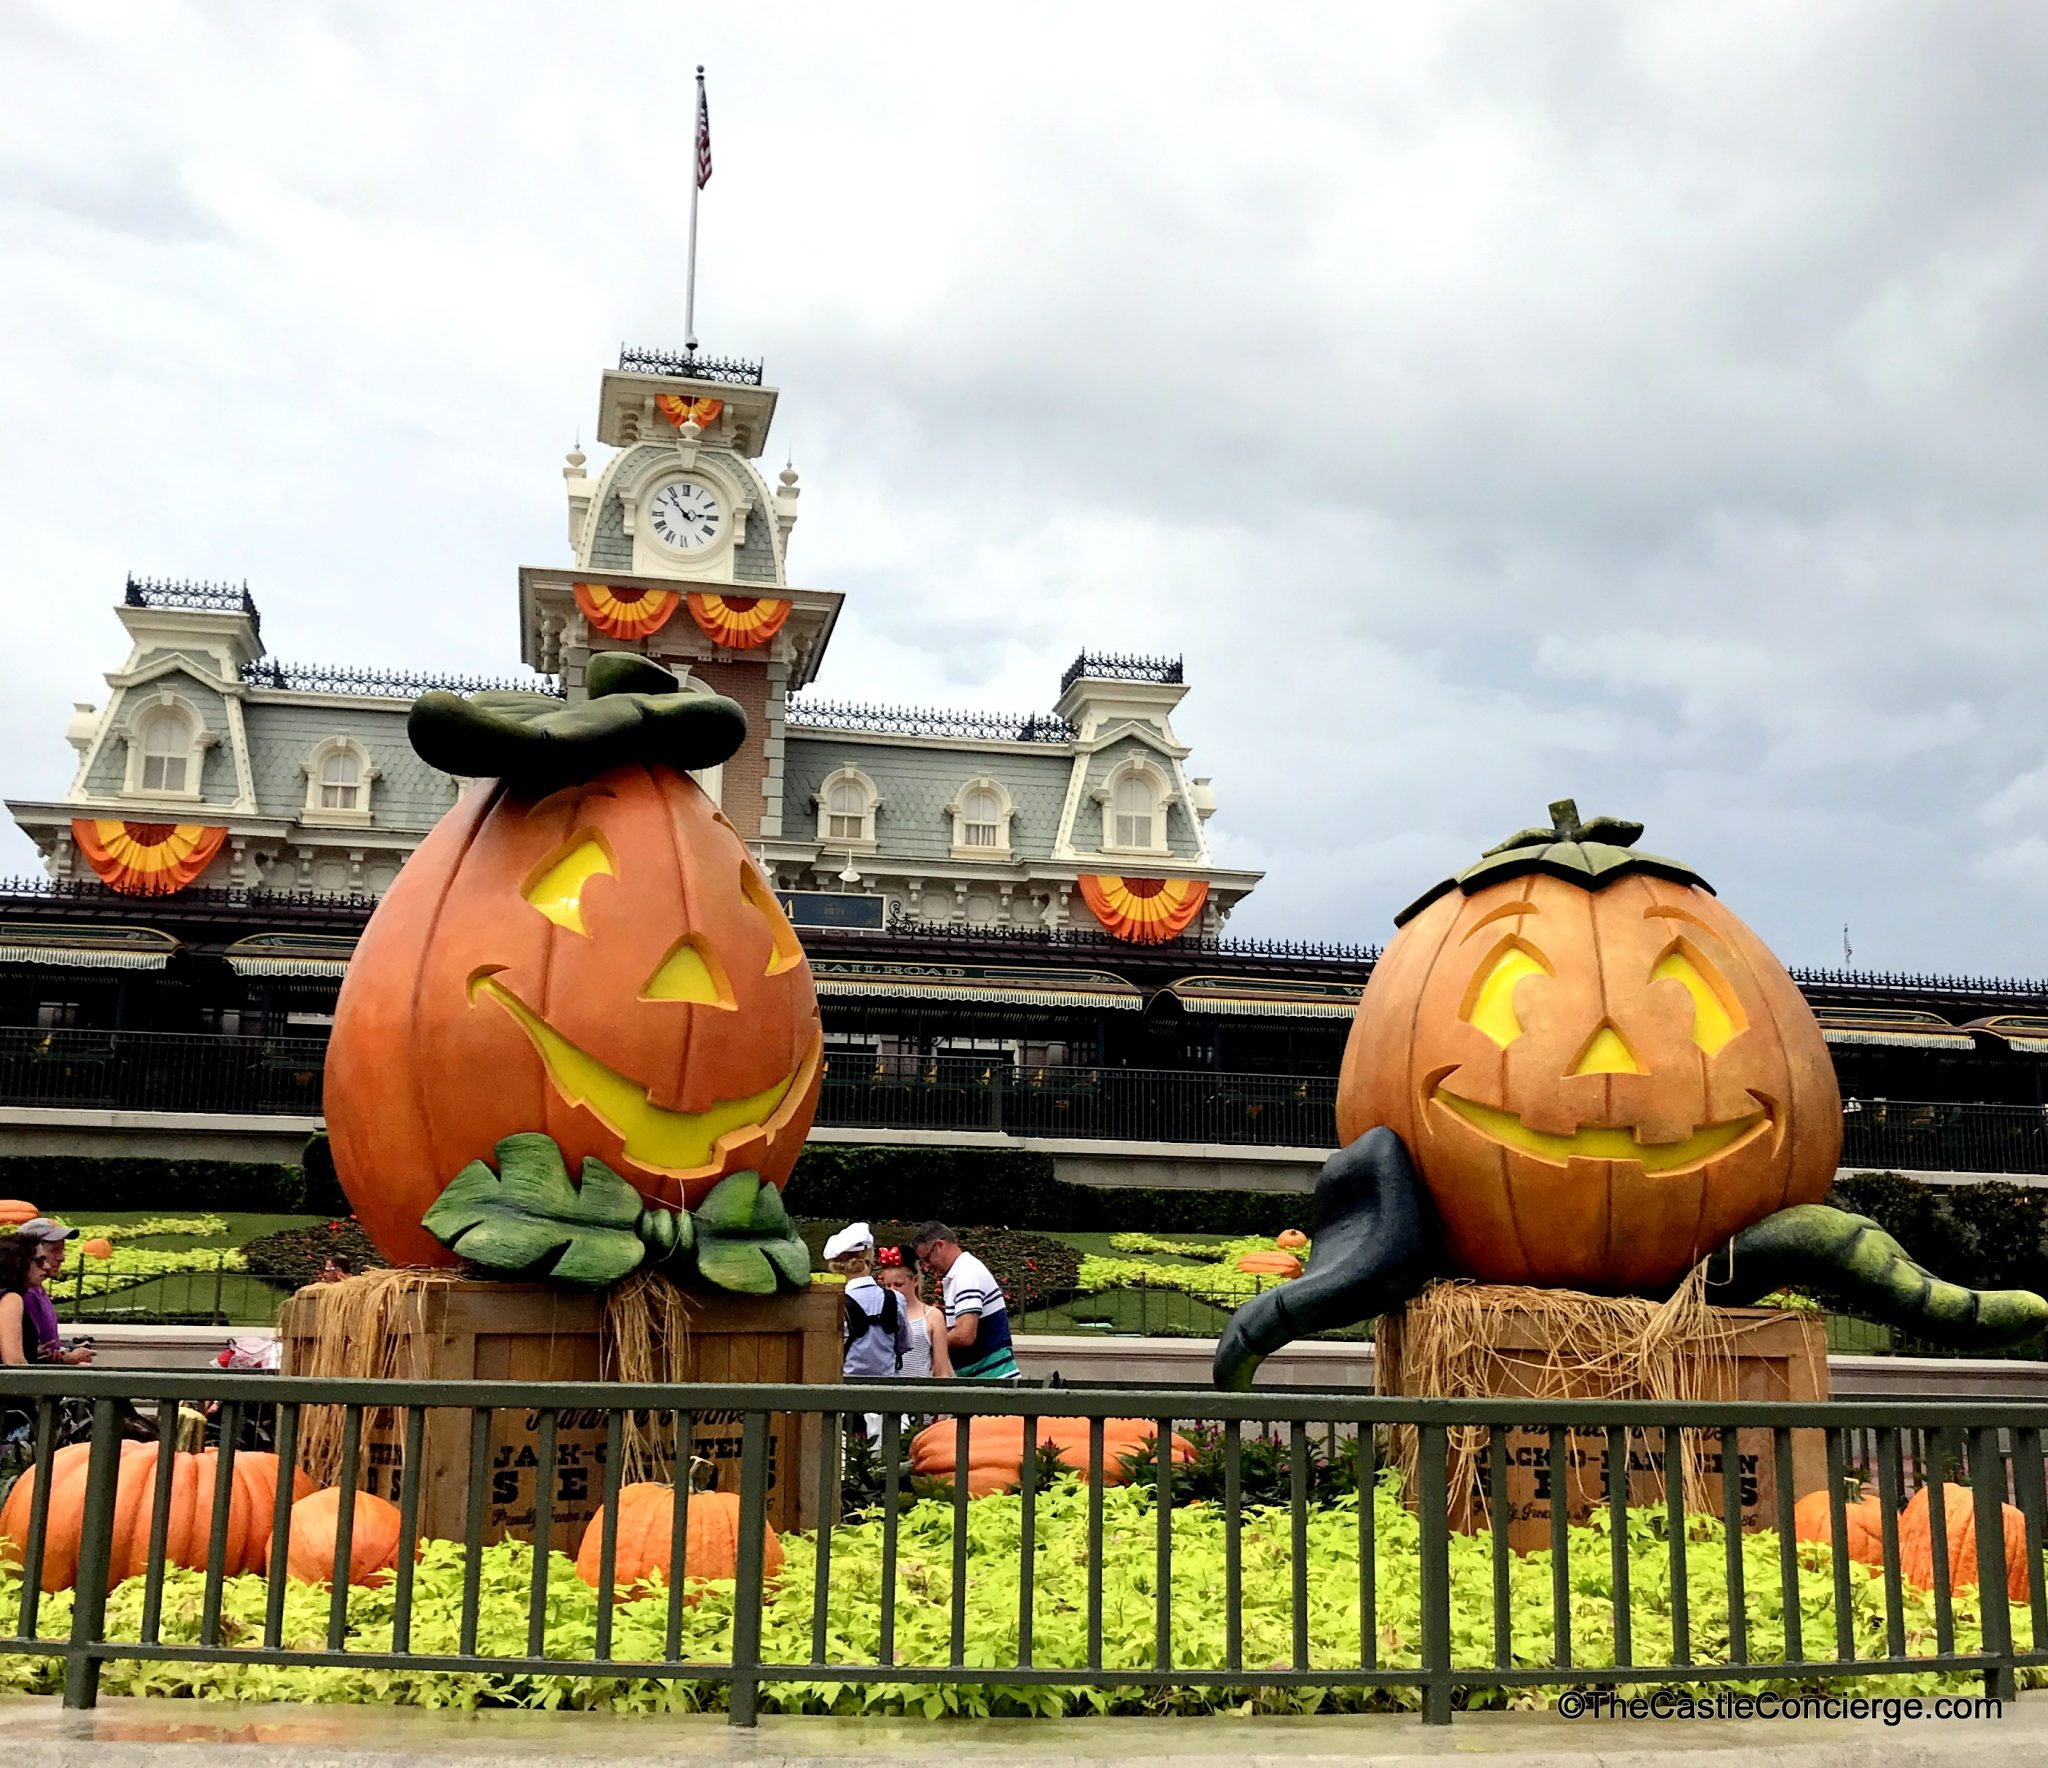 Seasonal decor at Halloween in the Magic Kingdom.